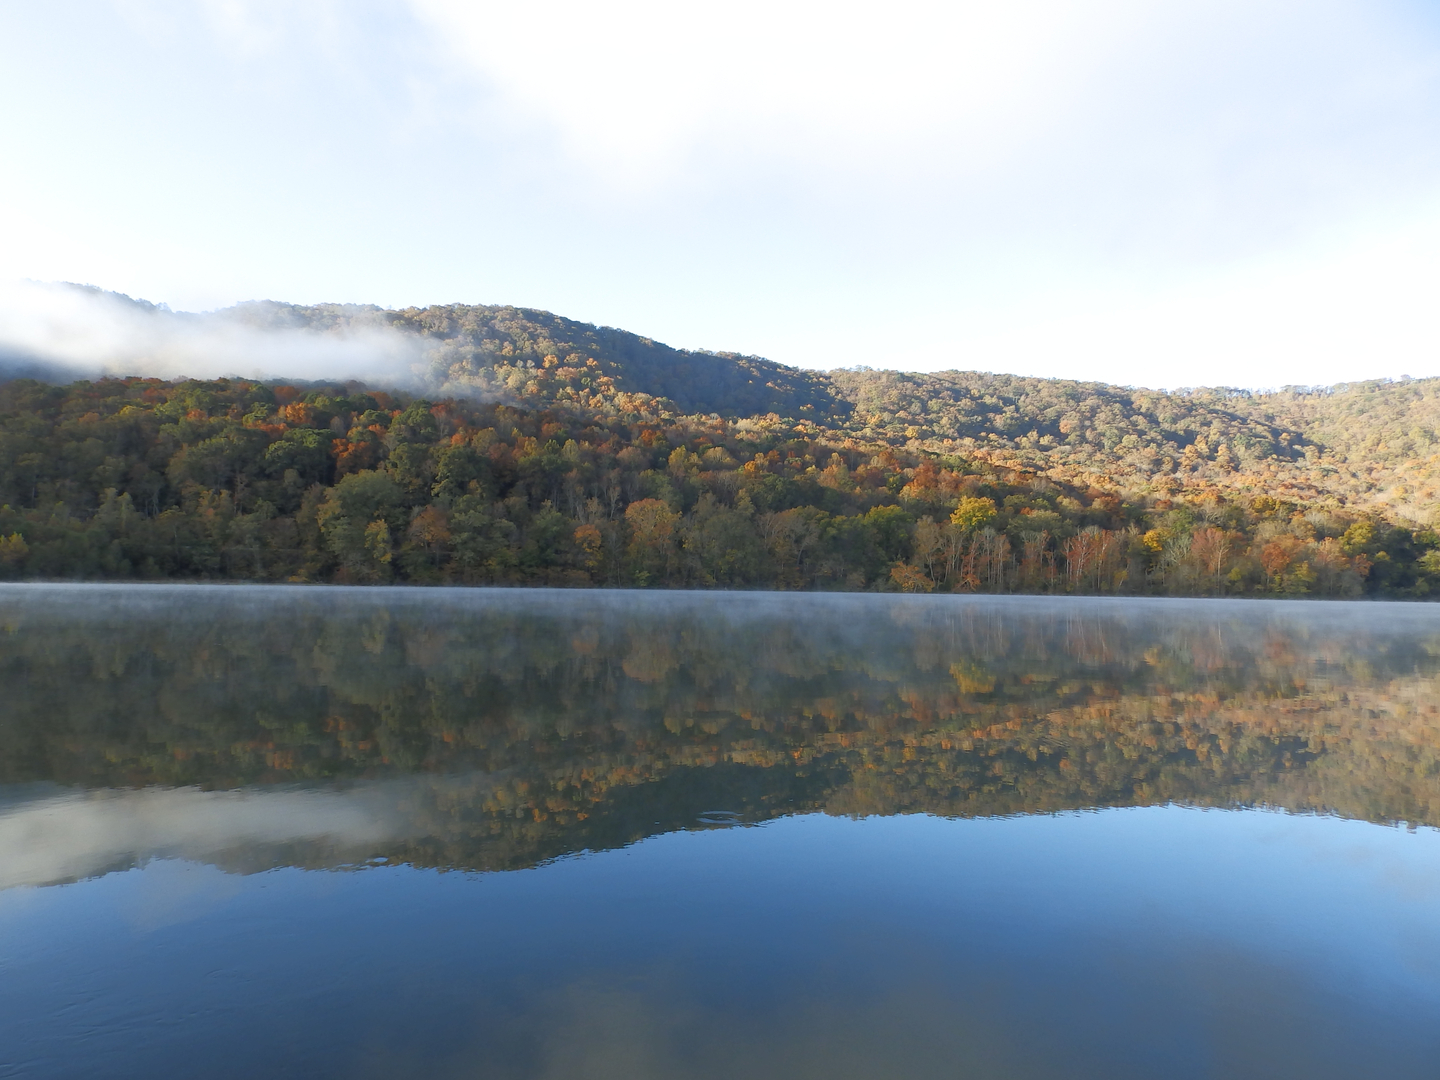 caverns tn mountain park state image best cabins chattanooga of rv parks rvpoints raccoon near